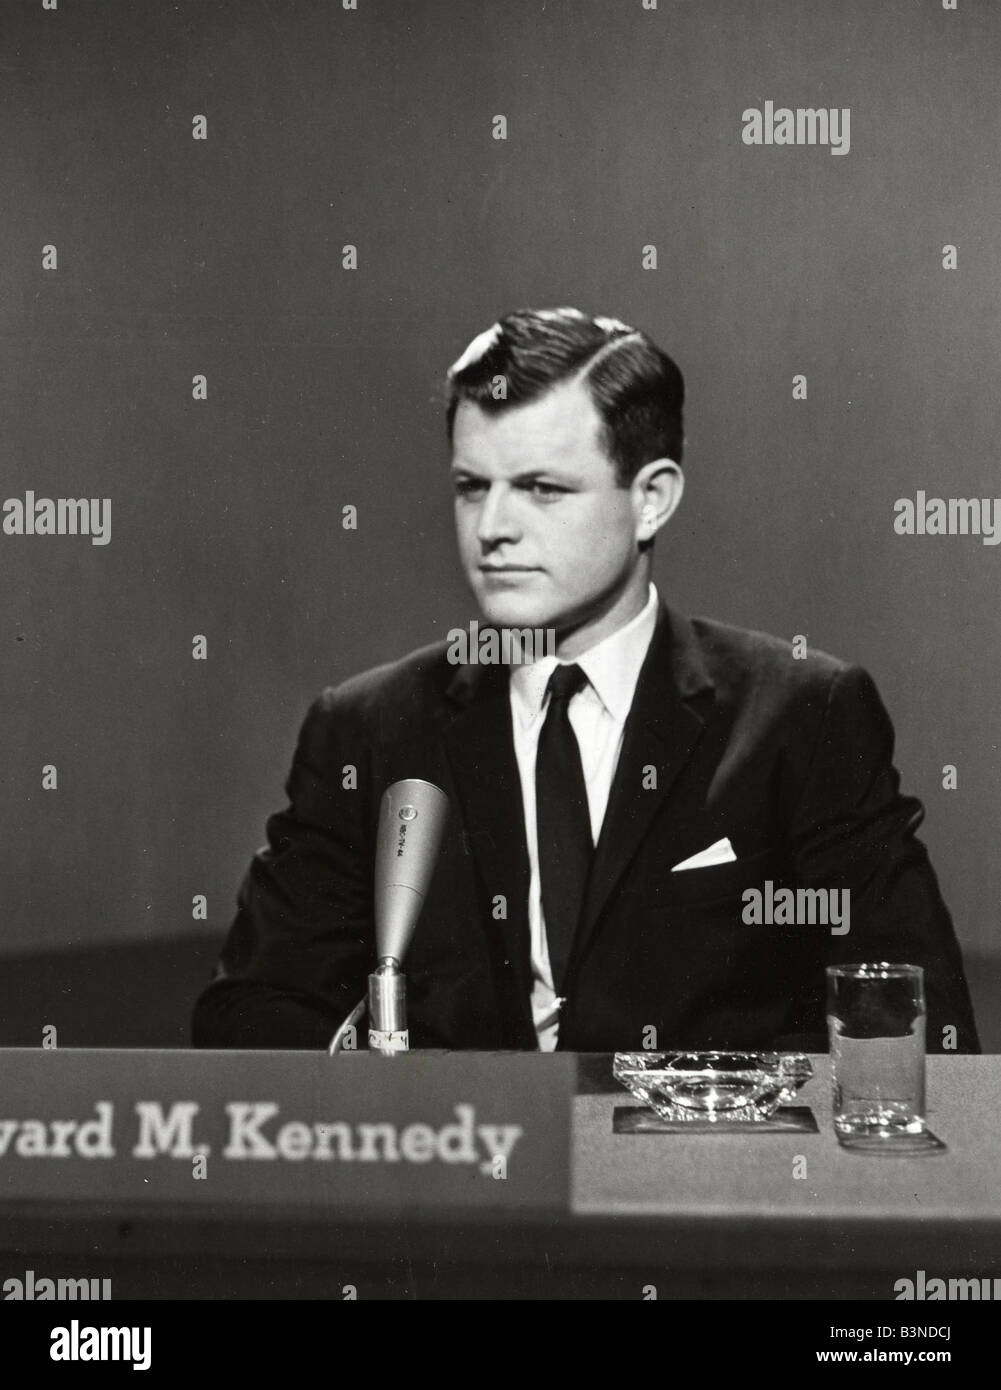 EDWARD 'TED' KENNEDY (1932-2009) US politician in 1962 - Stock Image